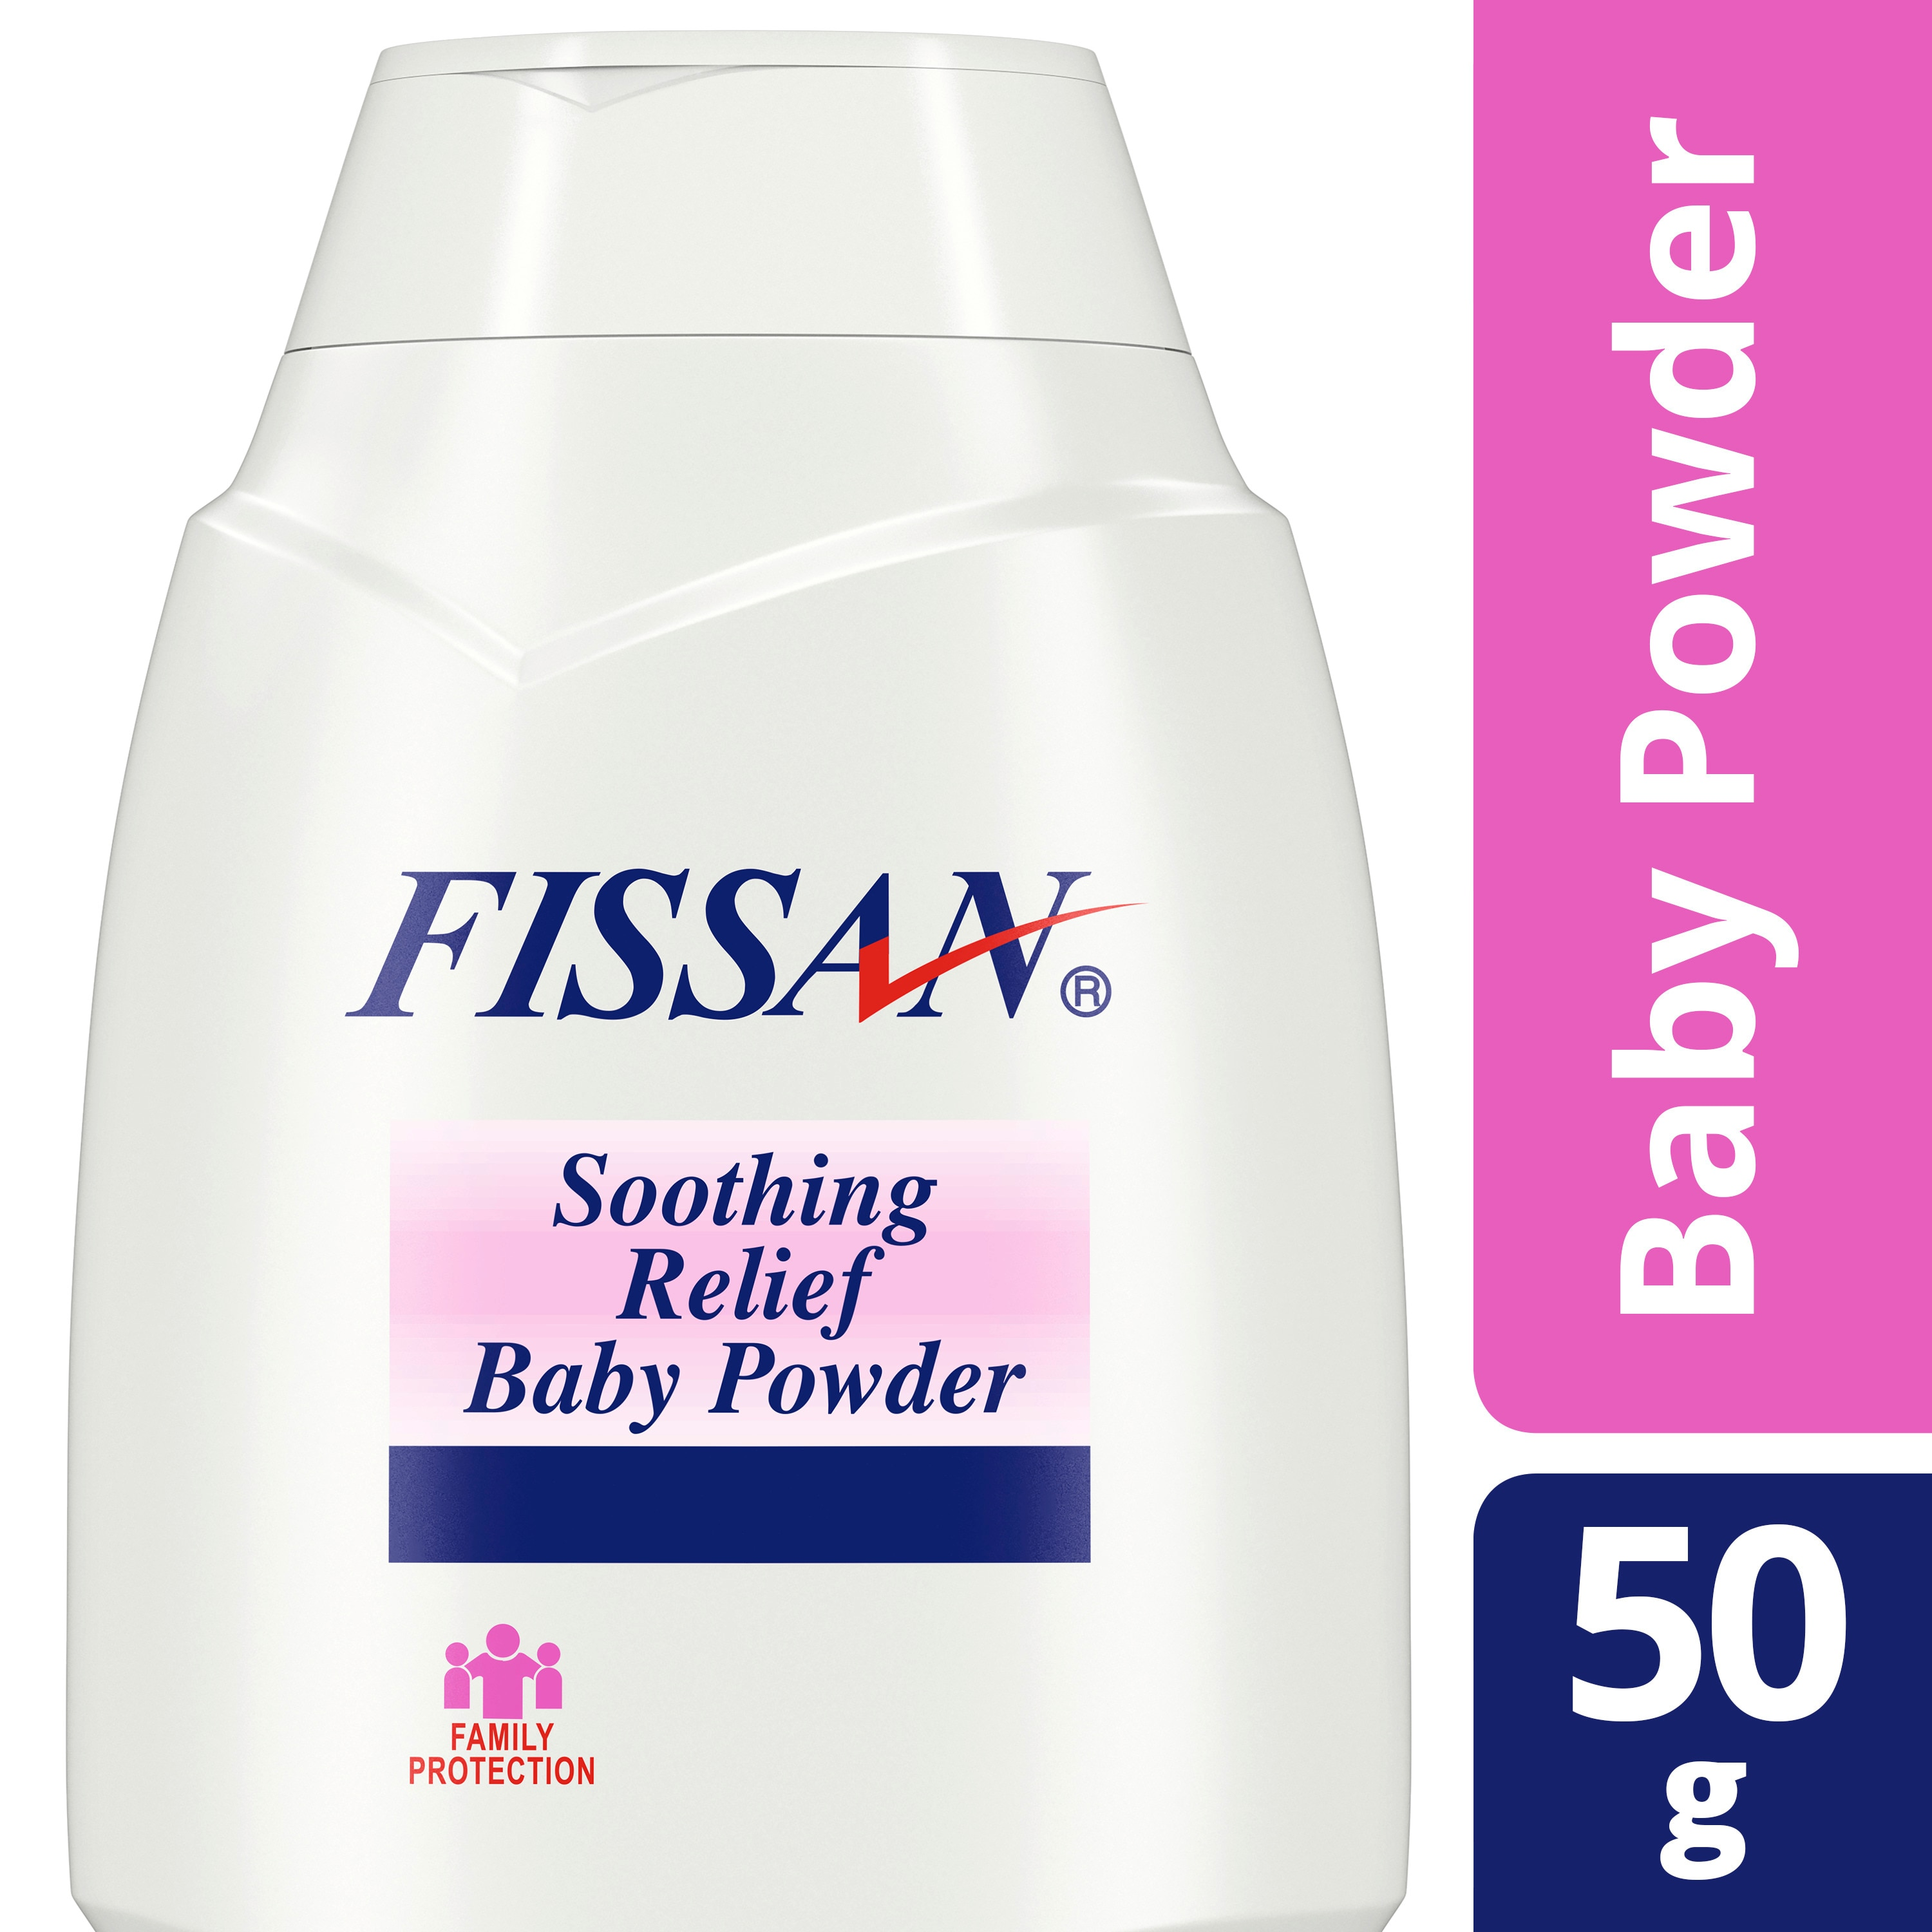 Soothing Relief Baby Powder 50g